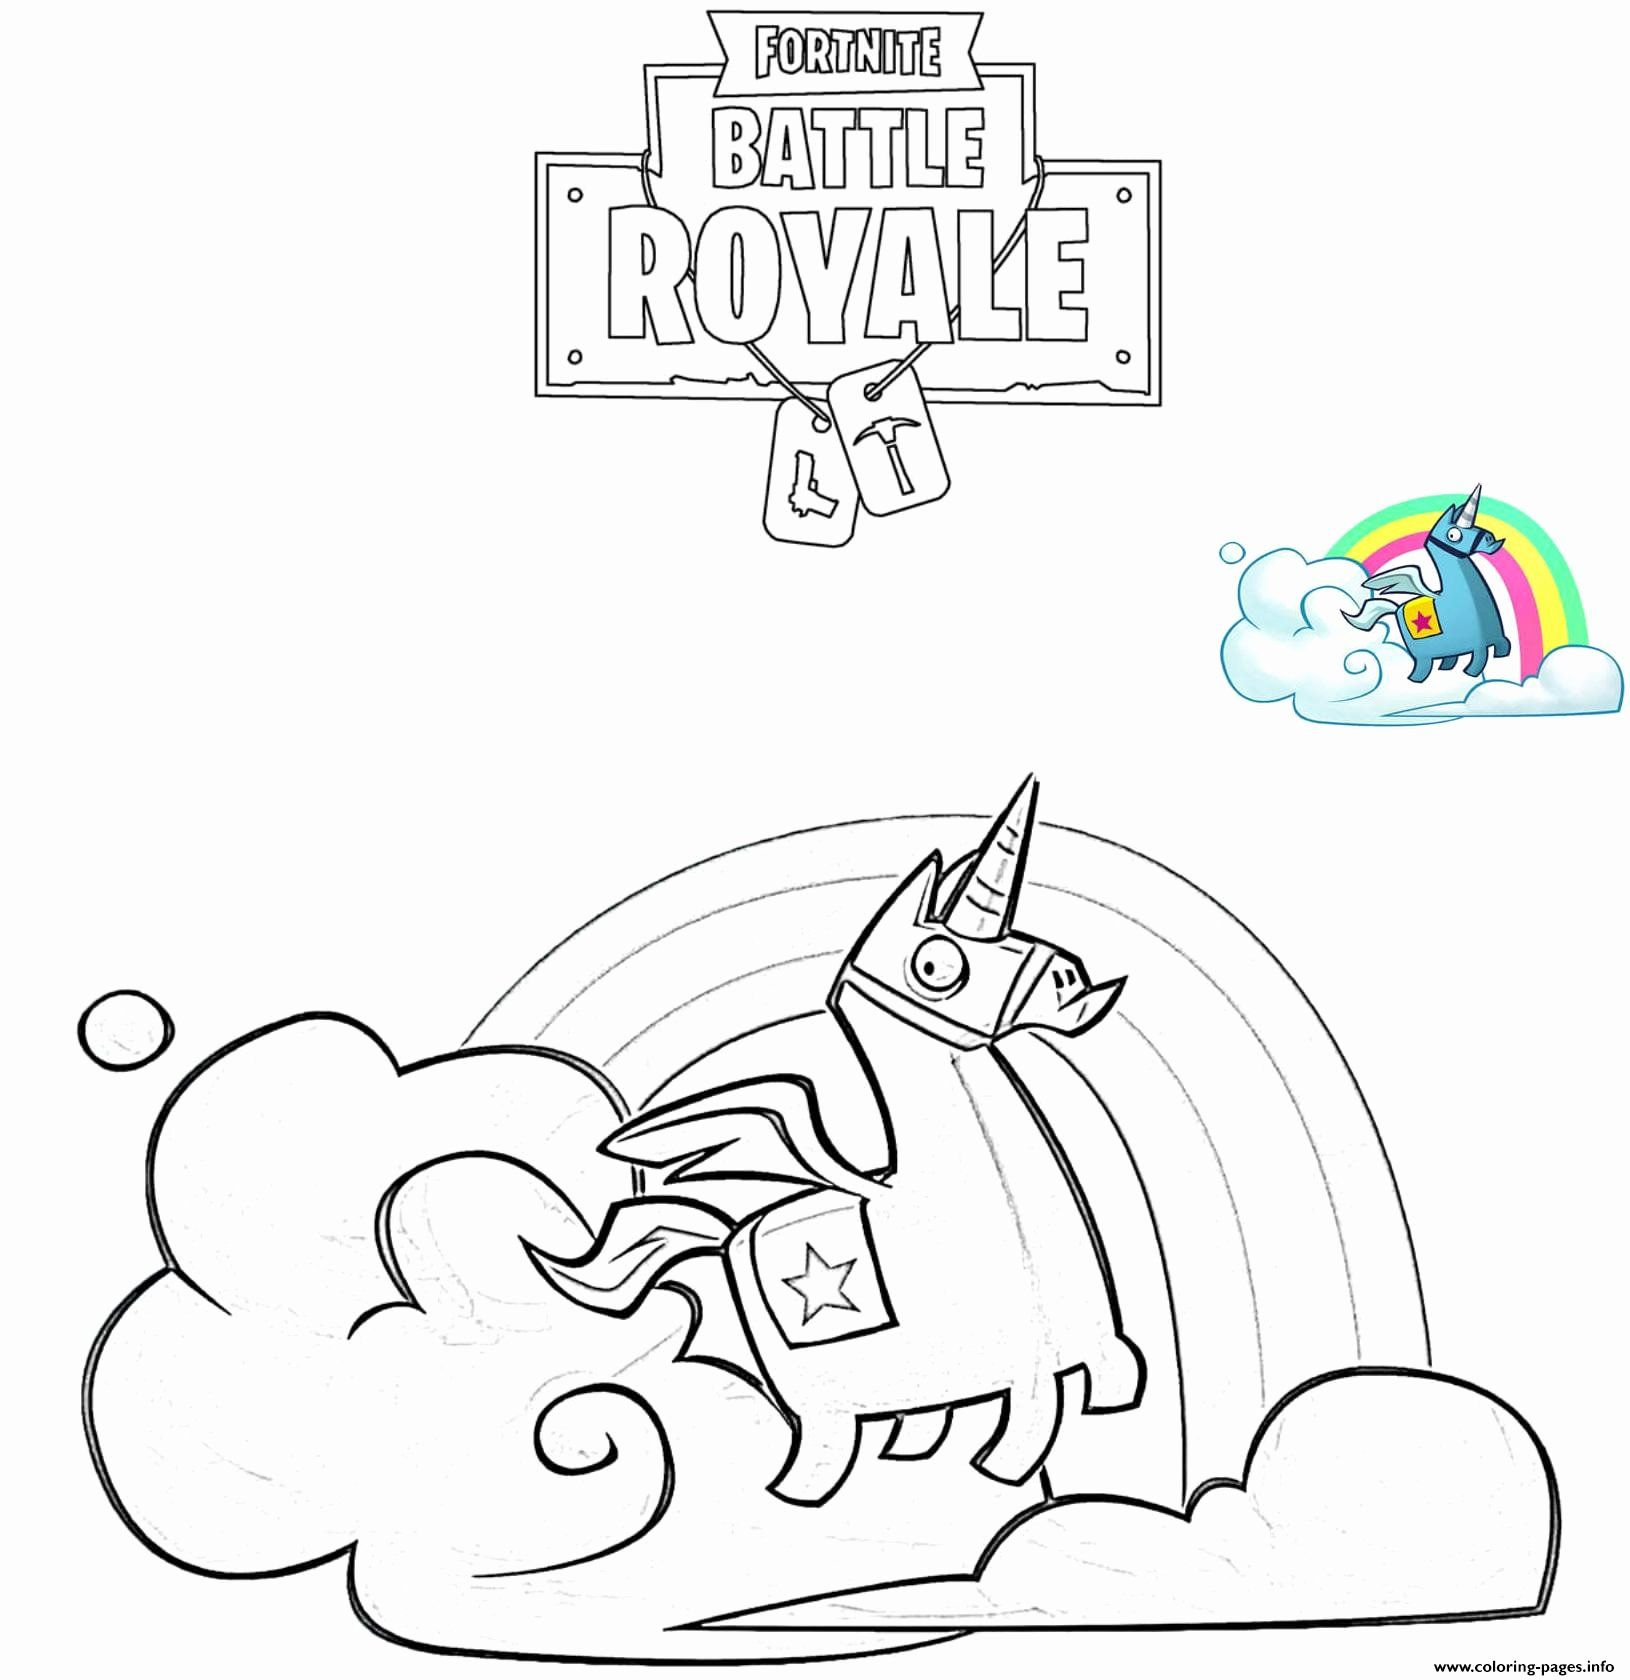 32 Fortnite Llama Coloring Page In 2020 Coloring Pages Cool Coloring Pages Baby Coloring Pages